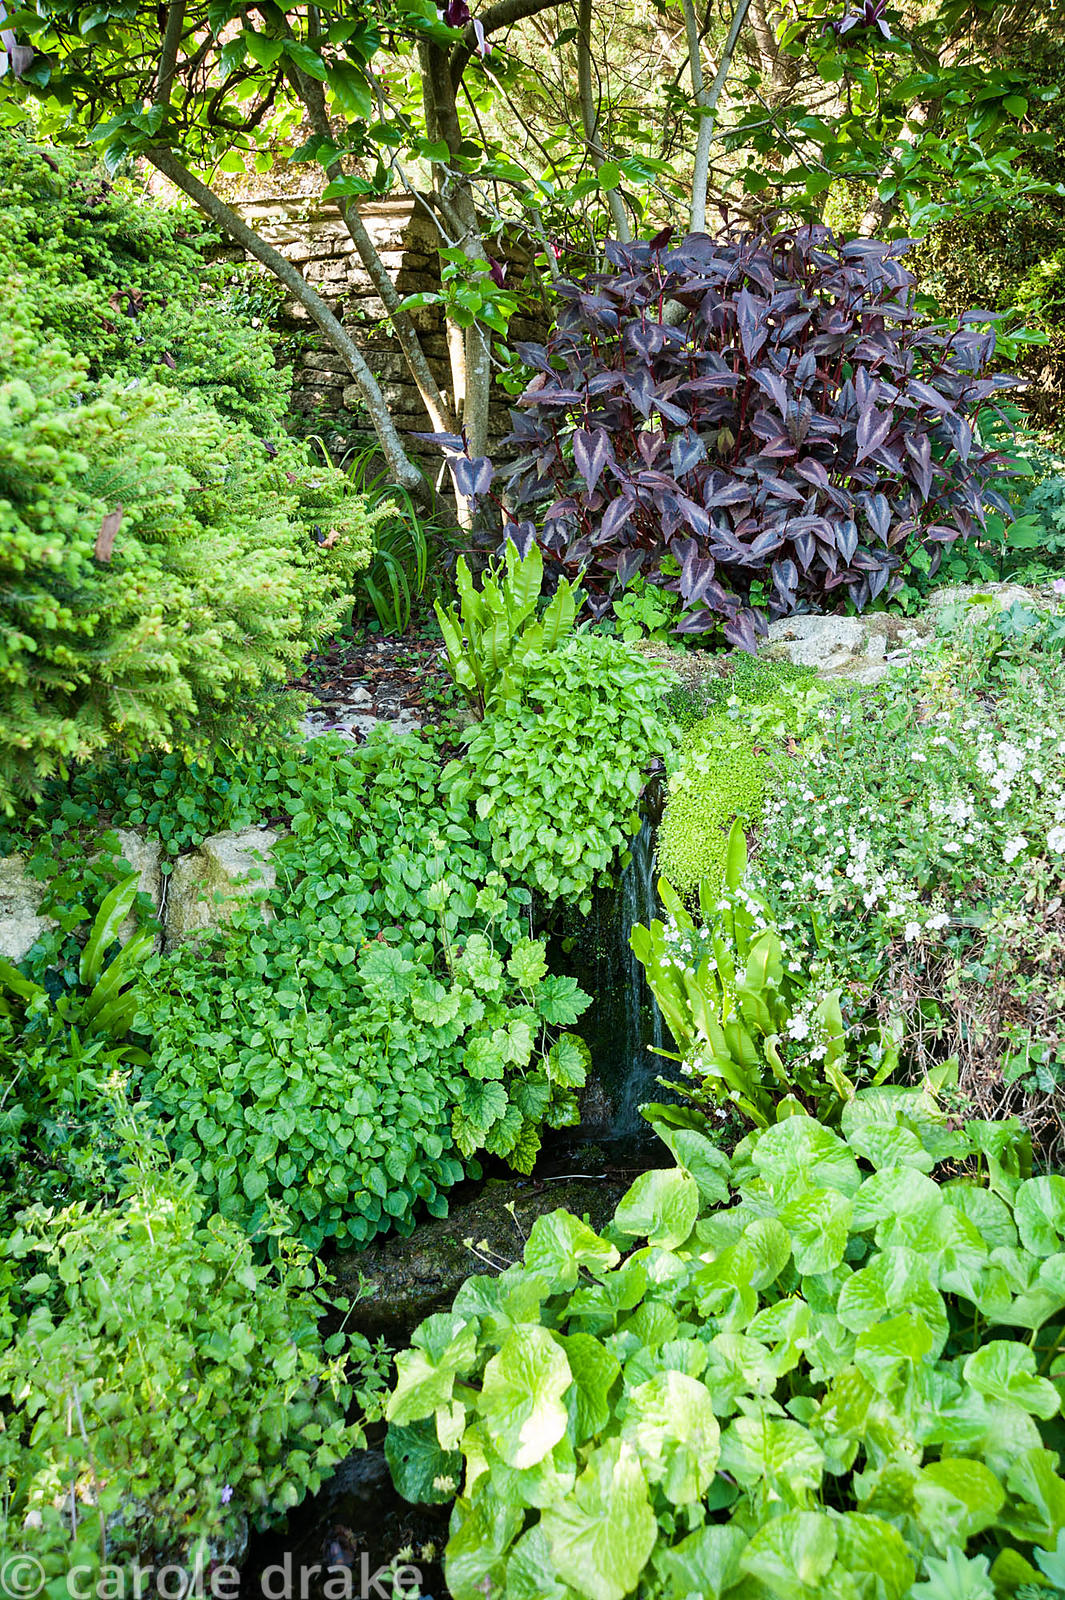 Ferns, Persicaria 'Red Dragon' and other foliage plants around a trickling stream. Iford Manor, Bradford-on-Avon, Wiltshire